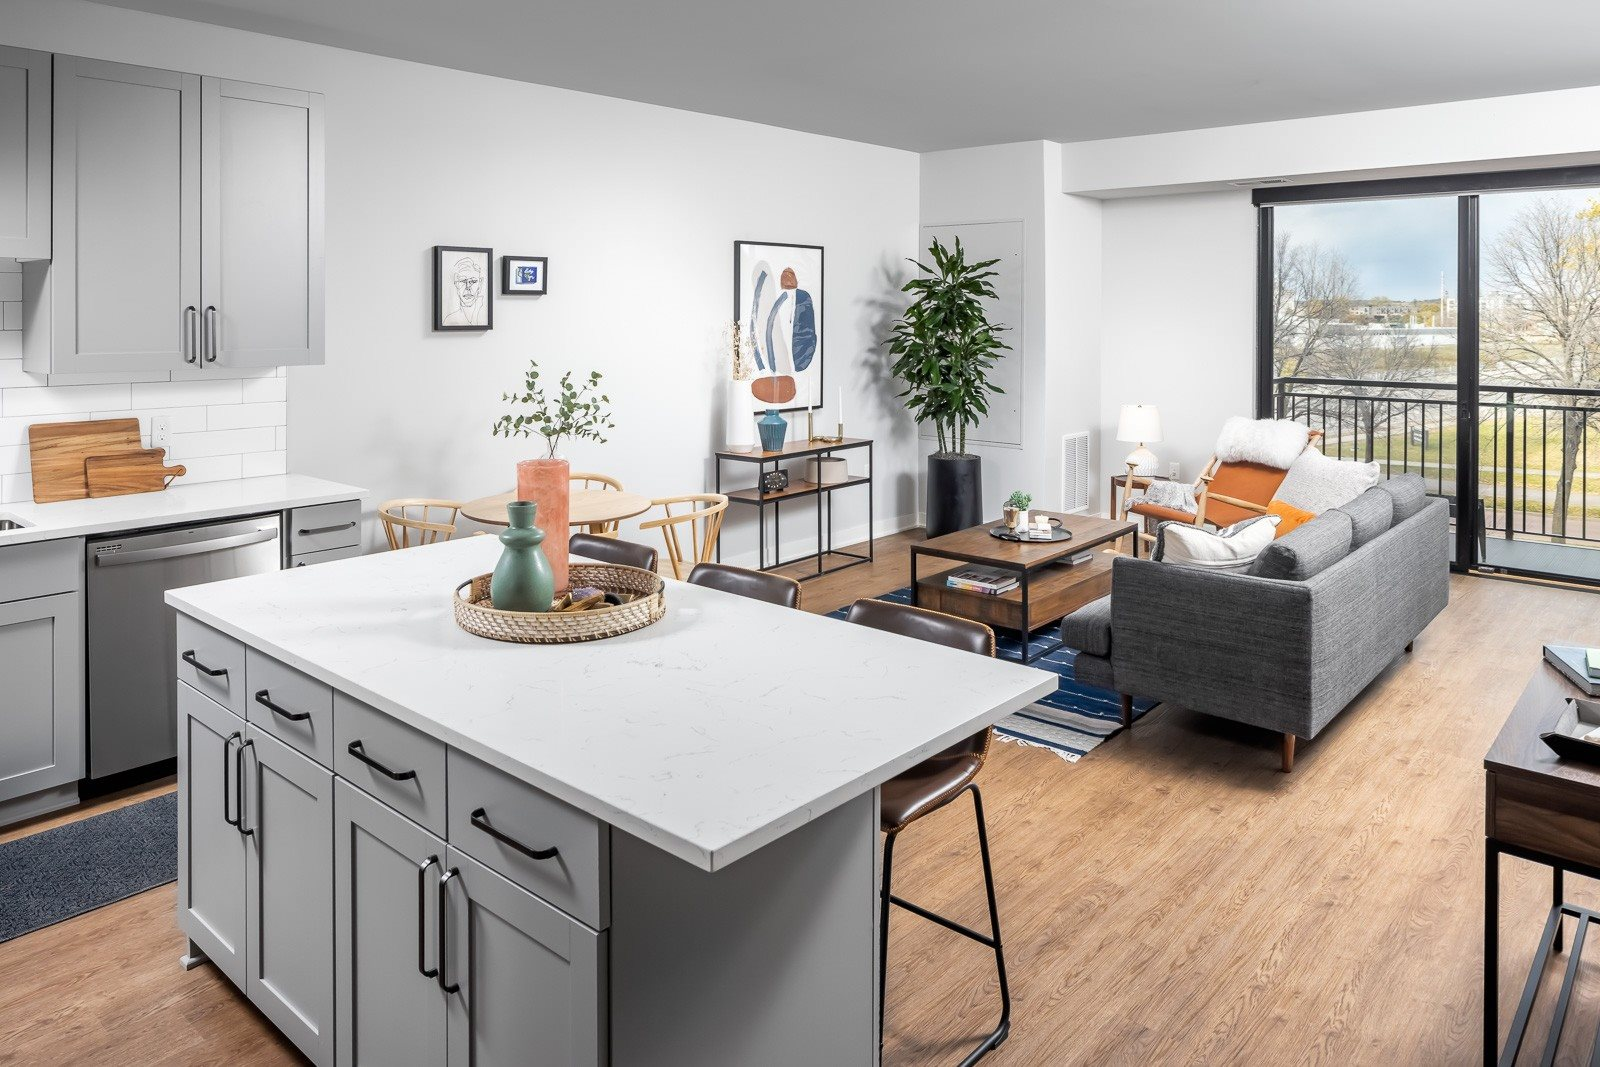 Kitchen island and living room with balcony in one bedroom apartment